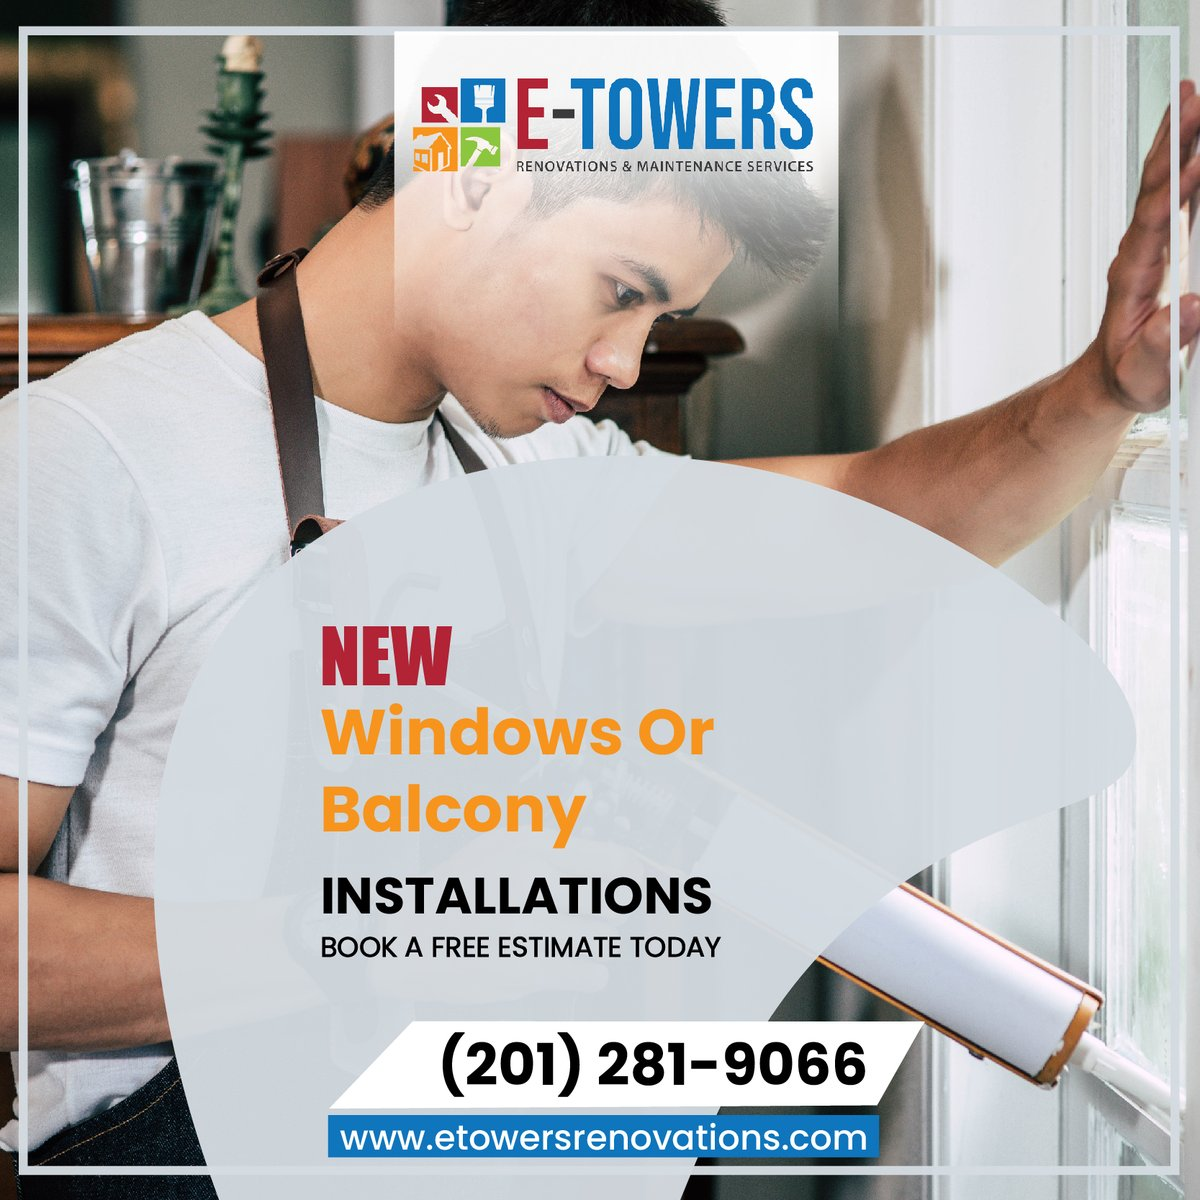 New windows or balcony Installation. Book a free estimate today Visit our Site: https://t.co/zAEe4fRDzJ #balconygarden #balconyview #balconyviews #balconydesign #windowseat #windowshopping #amazing_windowsdoors https://t.co/mE9fDaw4WT